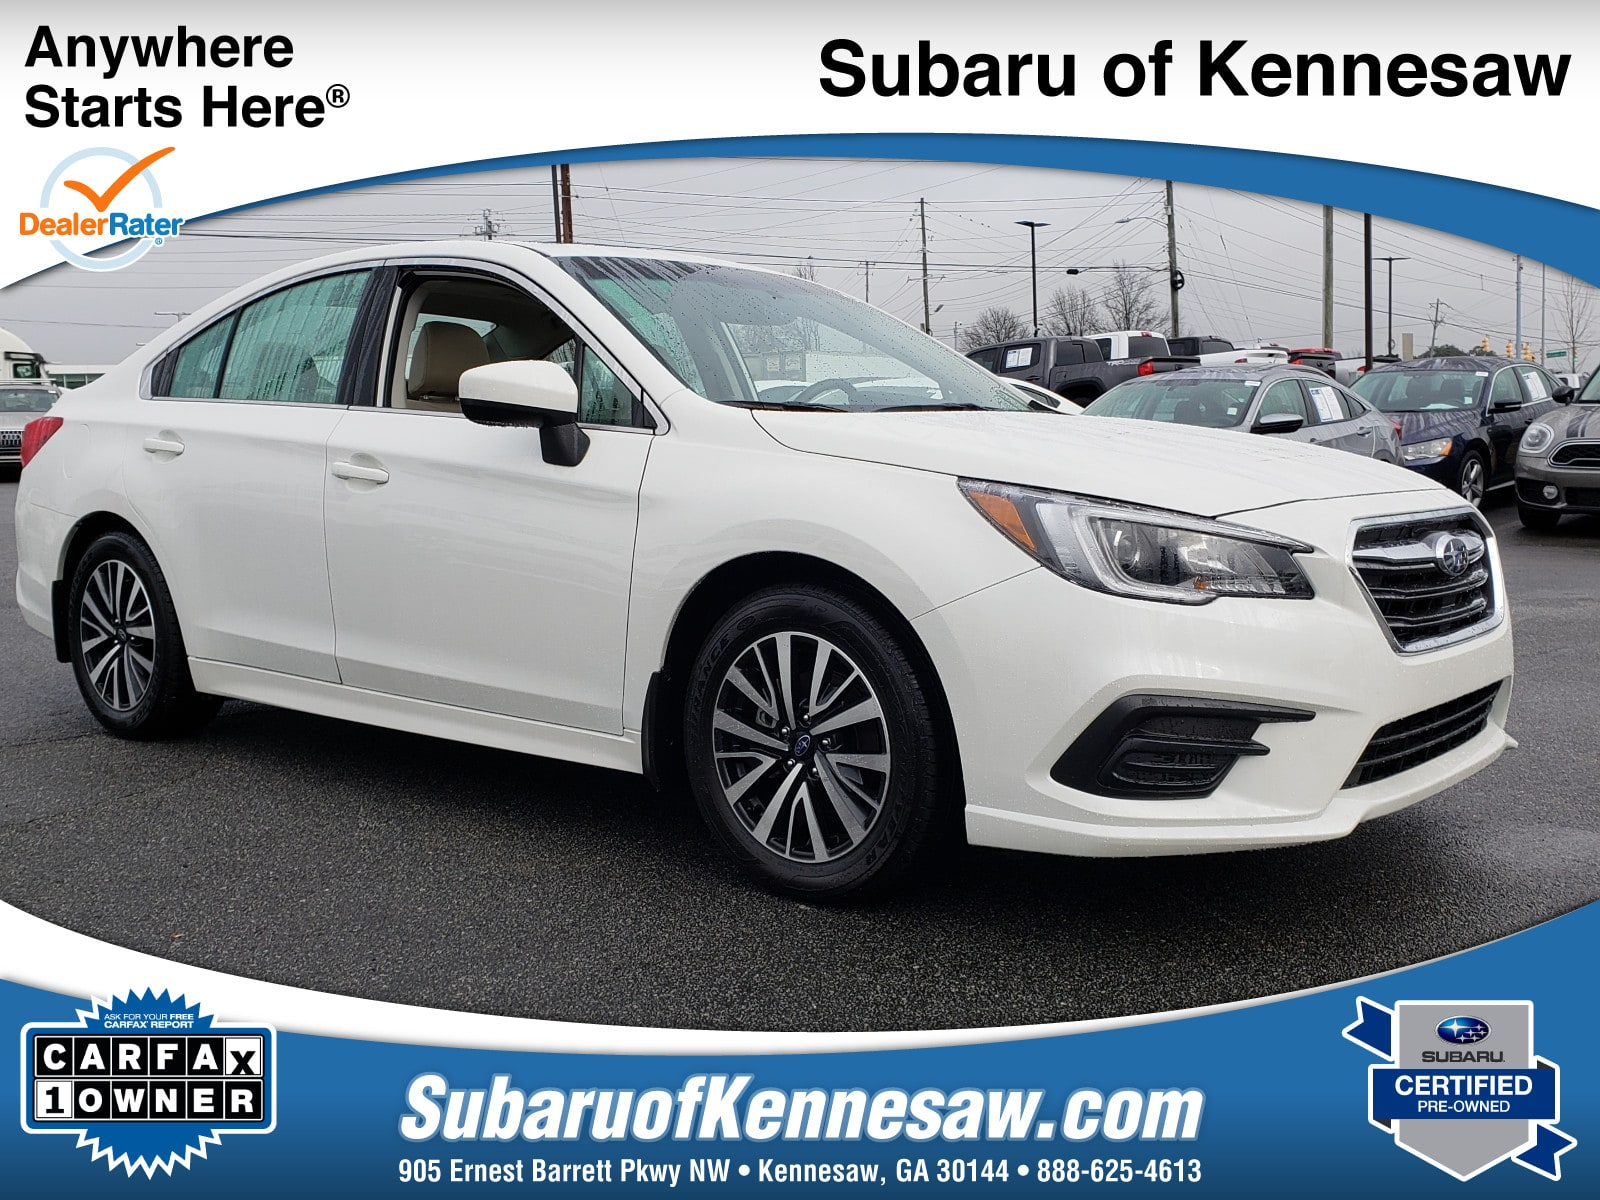 Carfax Used Cars Report Awesome Featured Used Cars for Sale Near atlanta